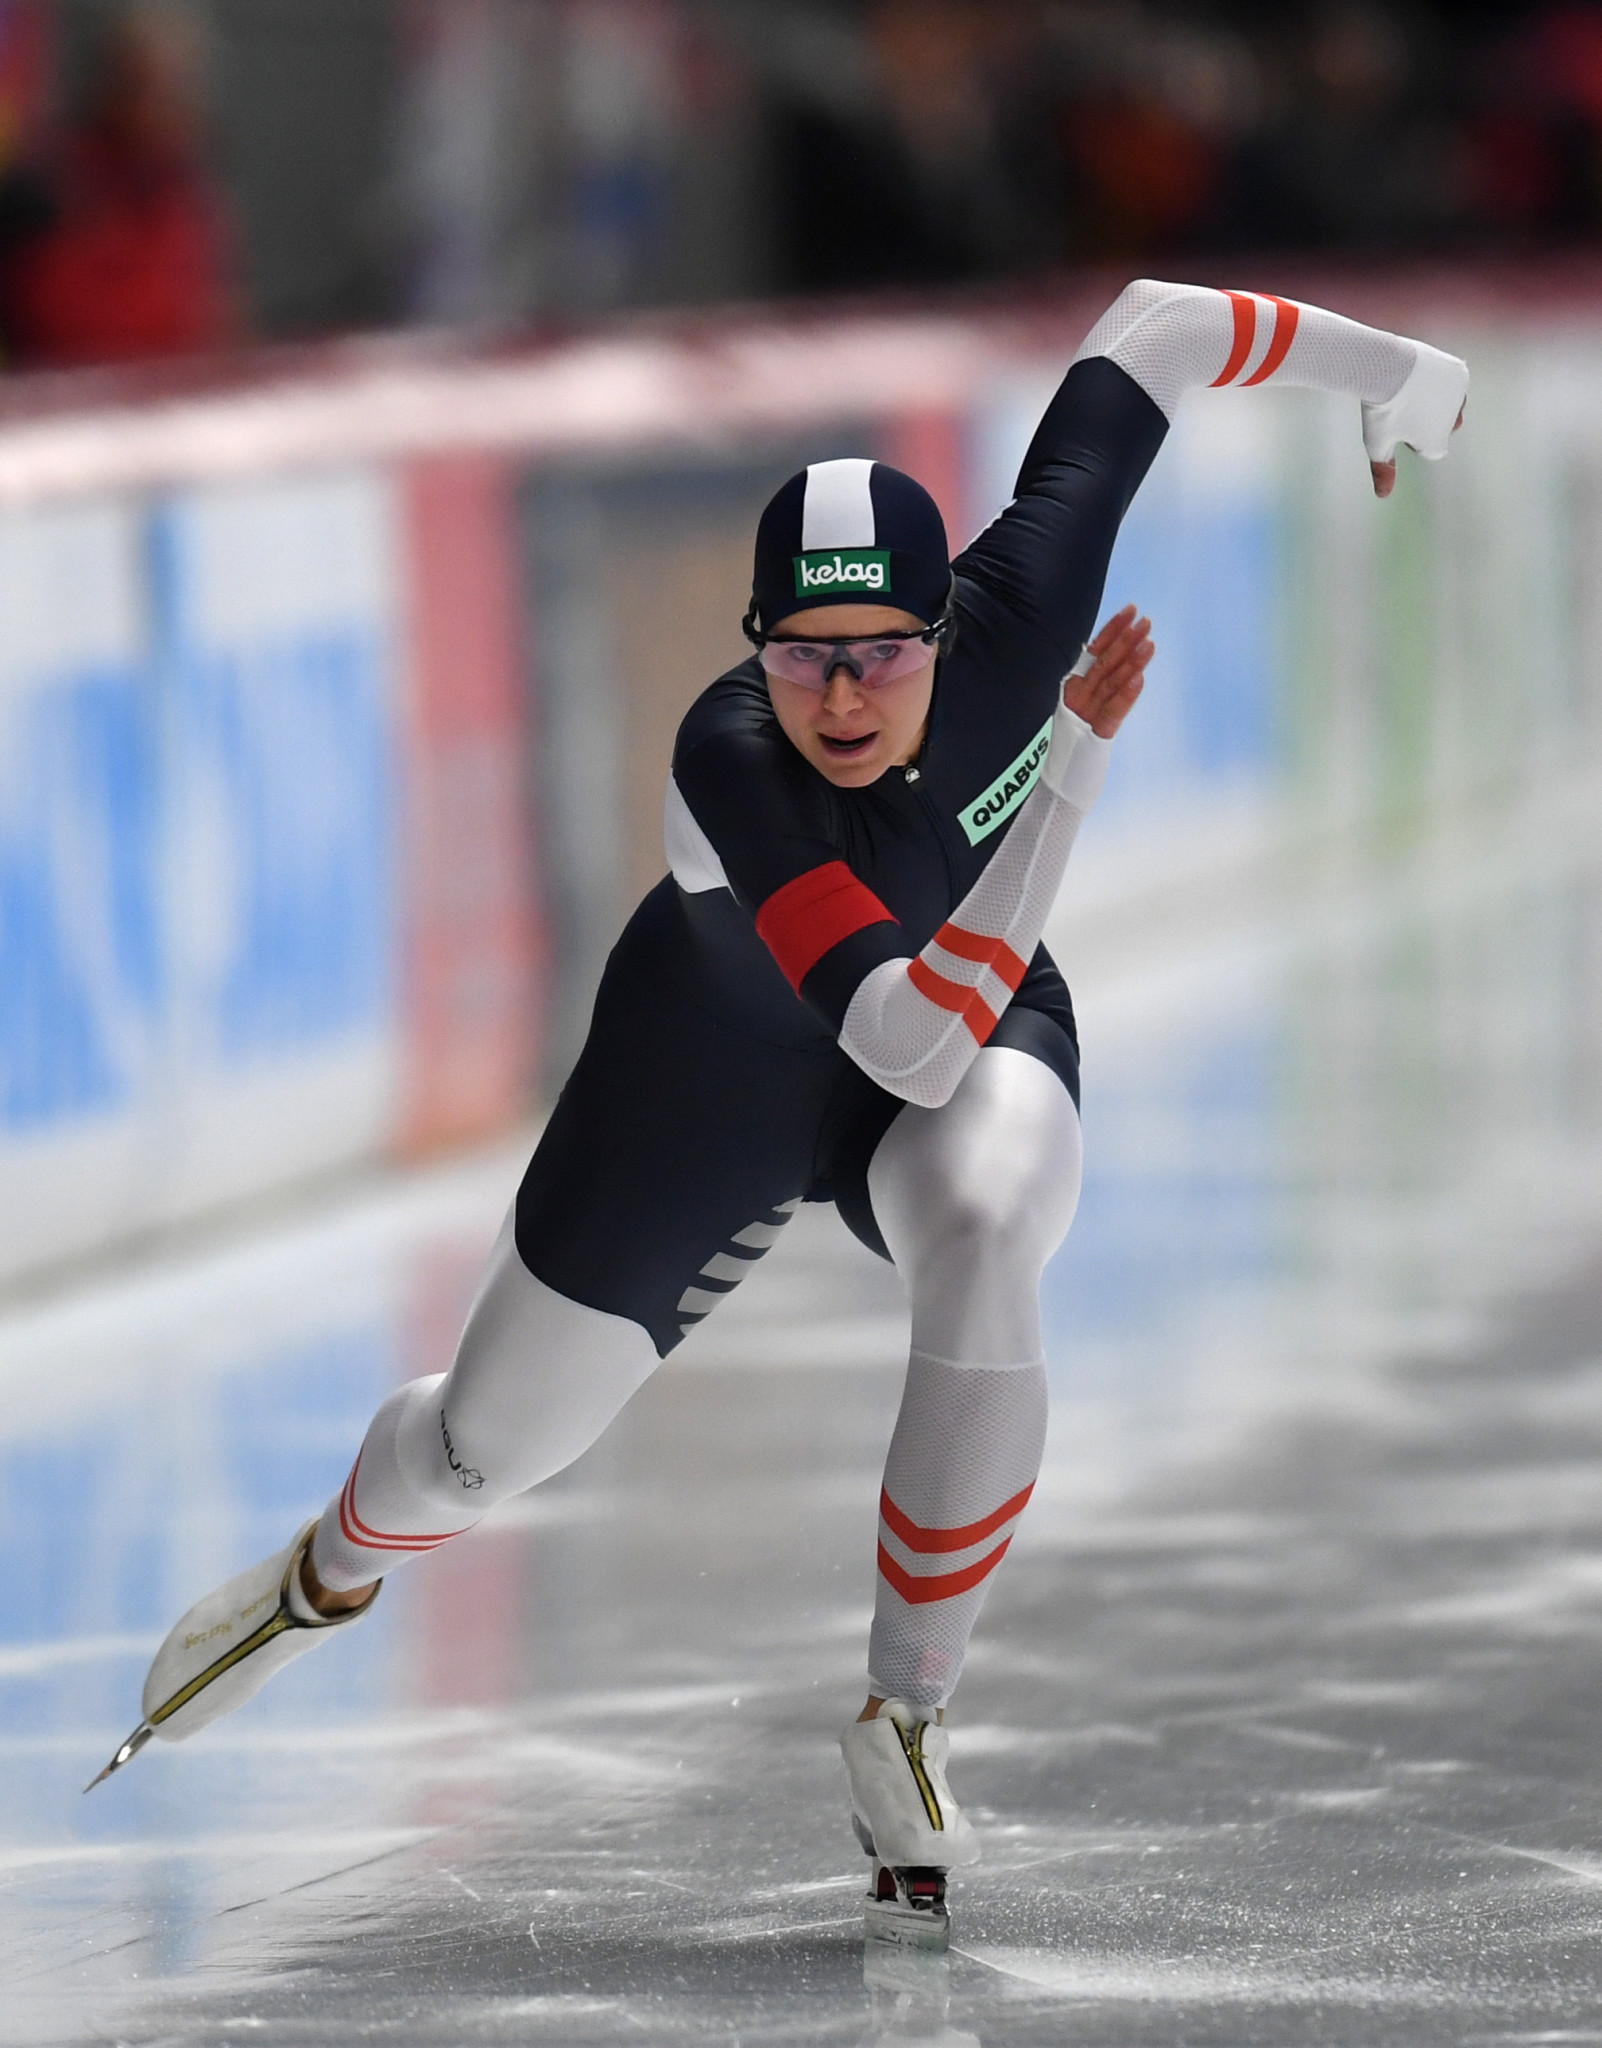 Austria's Vanessa Herzog upset Japan's Nao Kodaira to win the women's 500 metres title at the World Single Distances Speed Skating Championships ©Getty Images